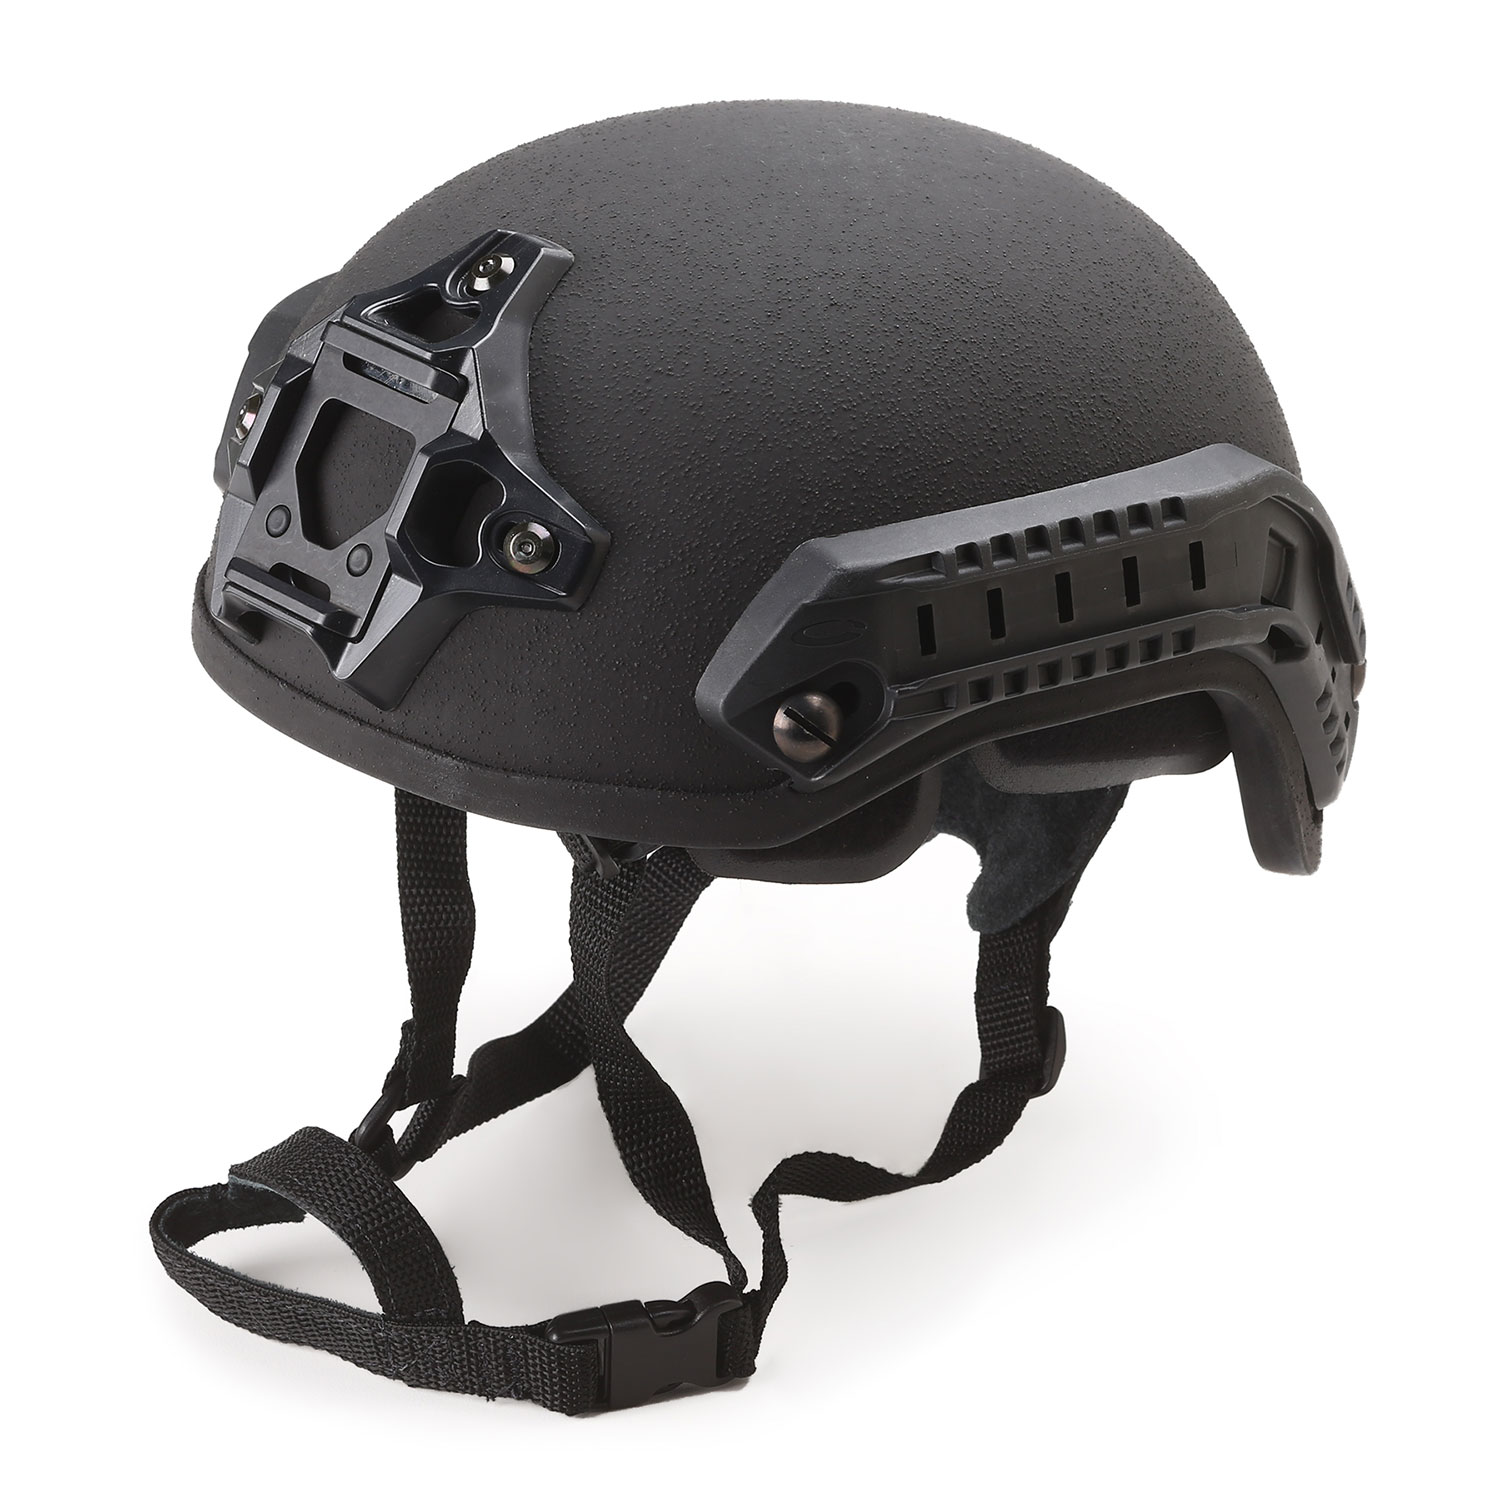 3M Combat High Cut Helmet with Rails and NVG Shroud